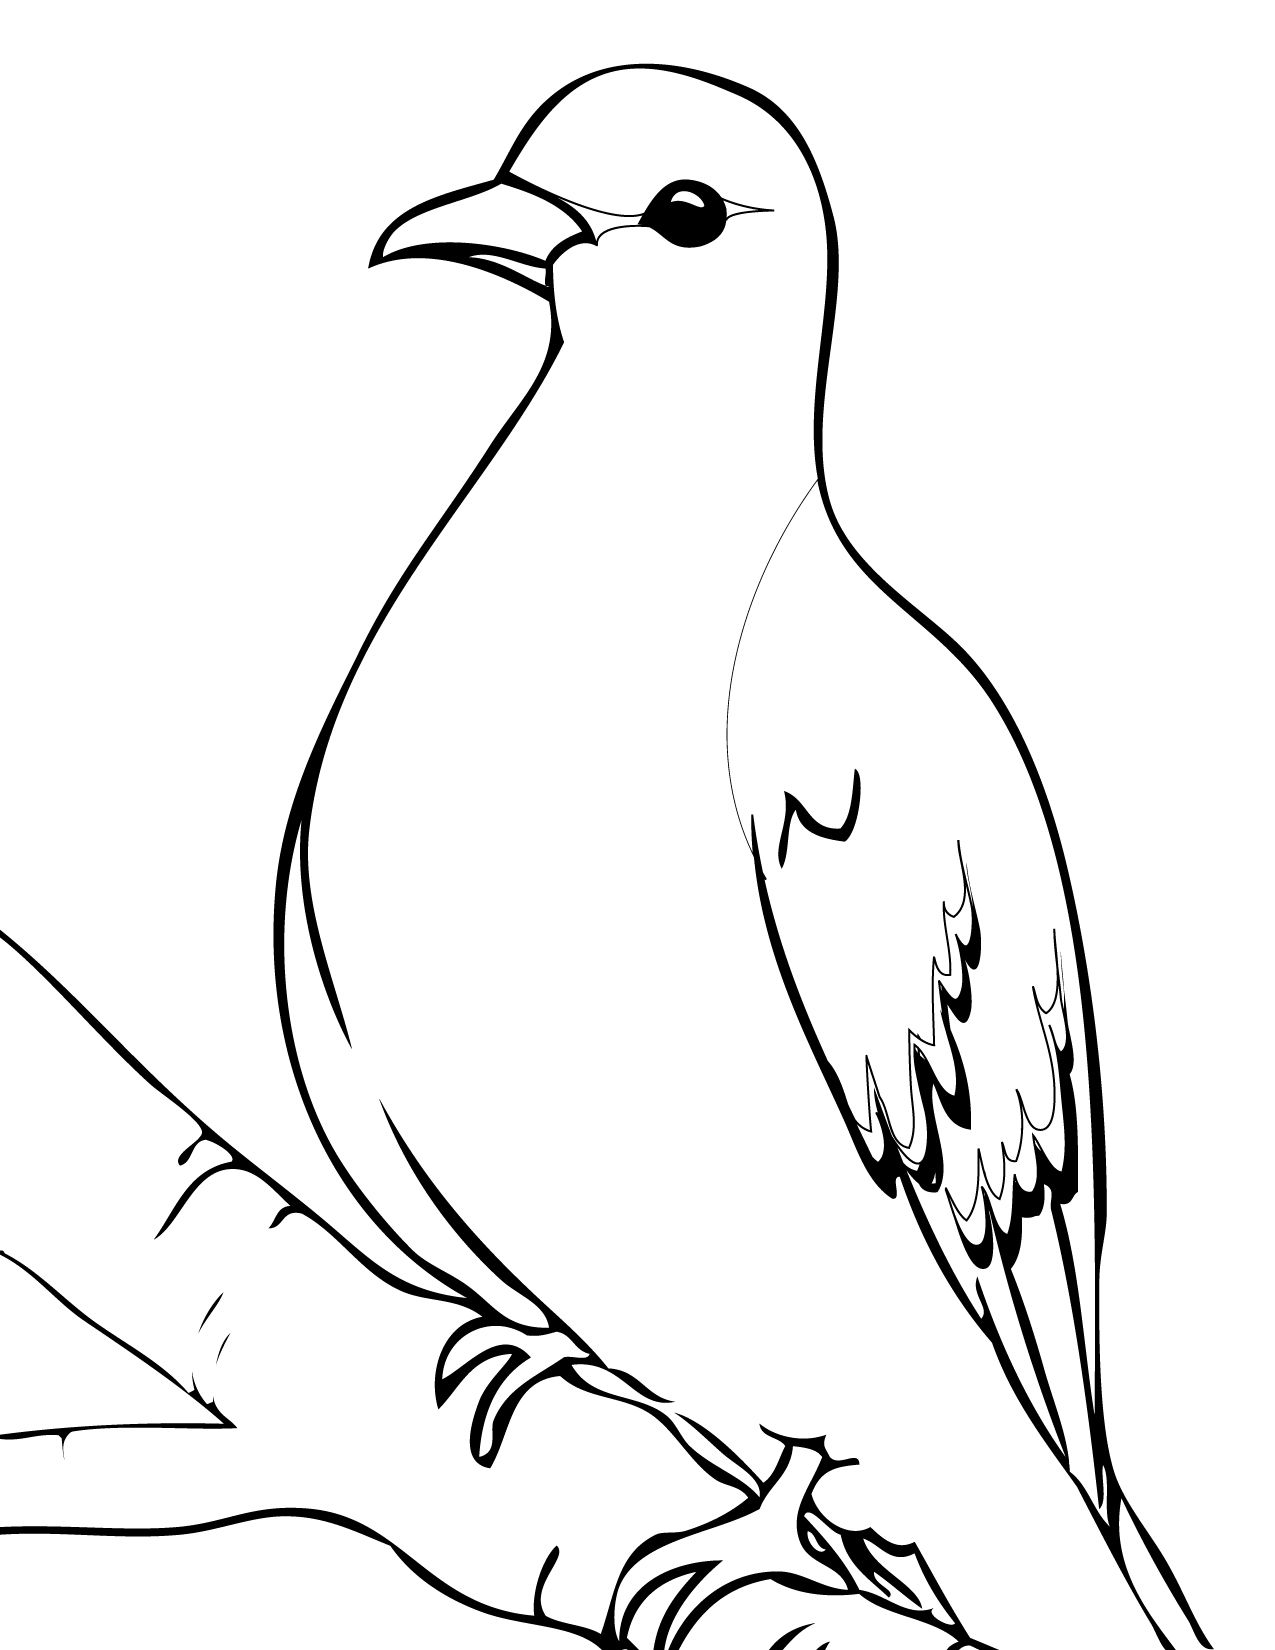 Mourning Dove Coloring Page Bird Coloring Pages Coloring Pages Bird Drawings